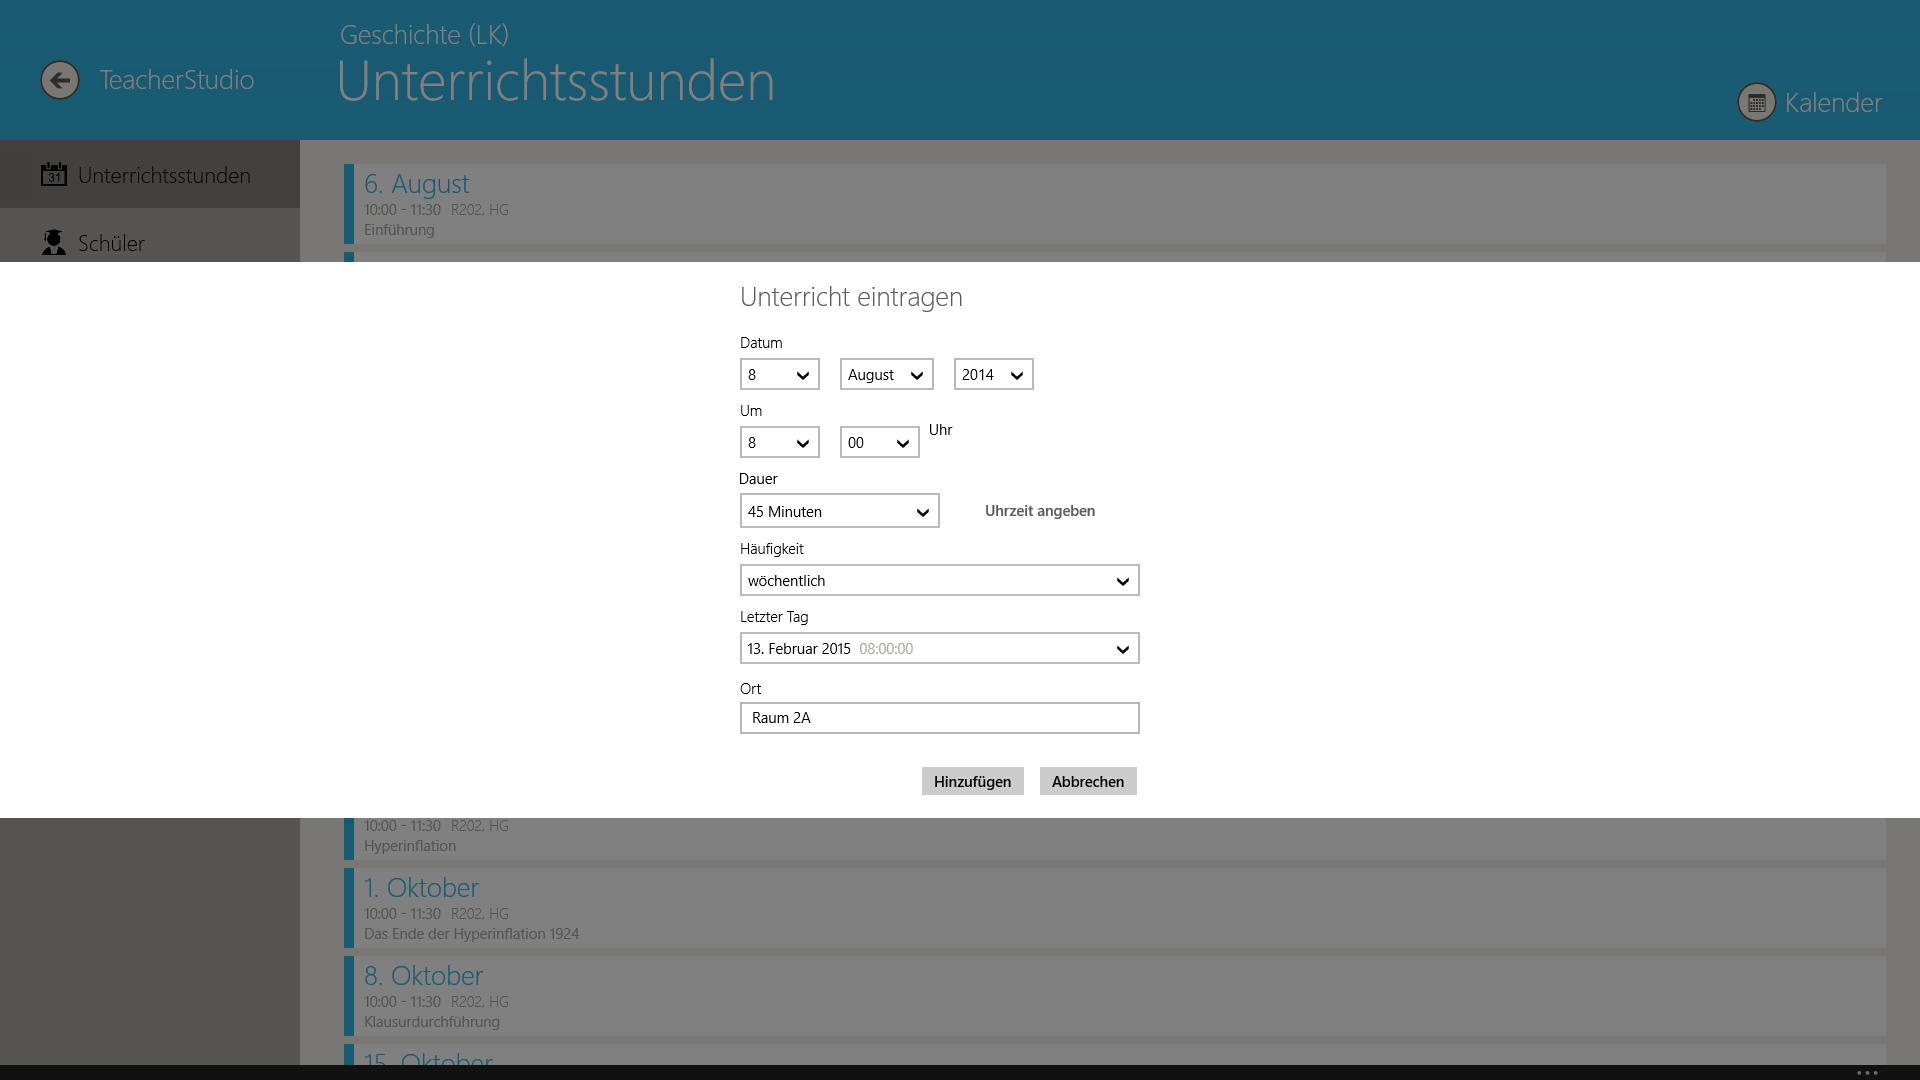 TeacherStudio-Handbuch-Windows-Stundenplan-Unterrichtsstunde-anlegen-Dialog